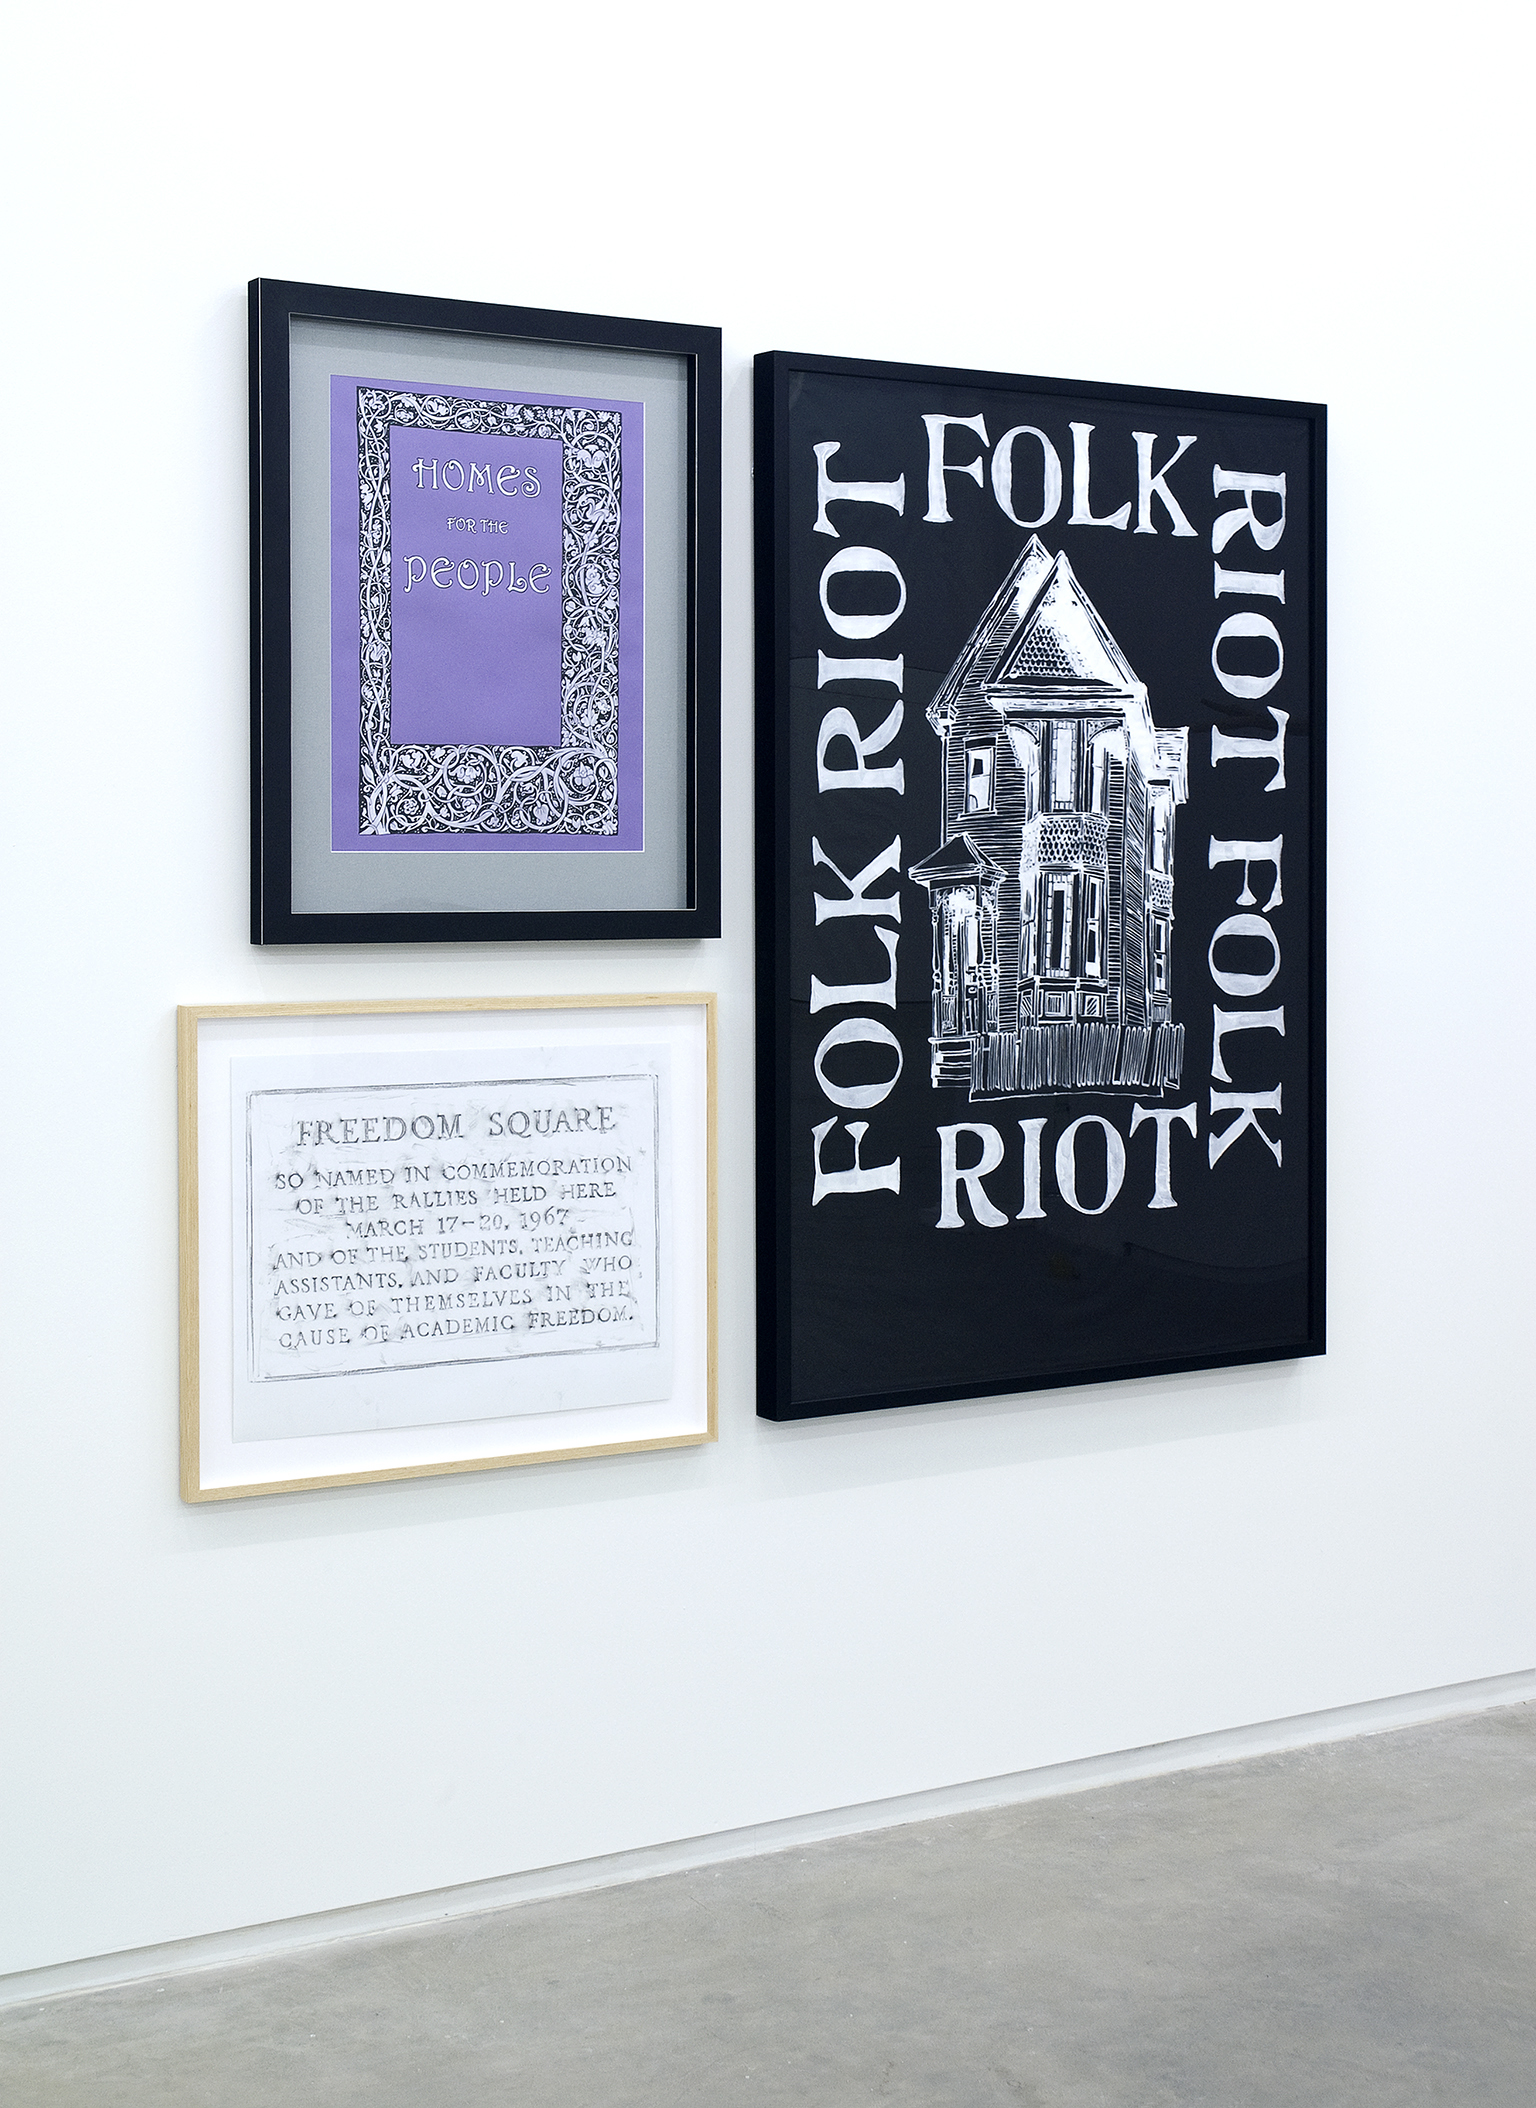 Alex Morrison, Homes for the People, 2008, The Poetics of Grey (no. 15), 2007, Folk Riot, 2009, mixed media, dimensions variable by